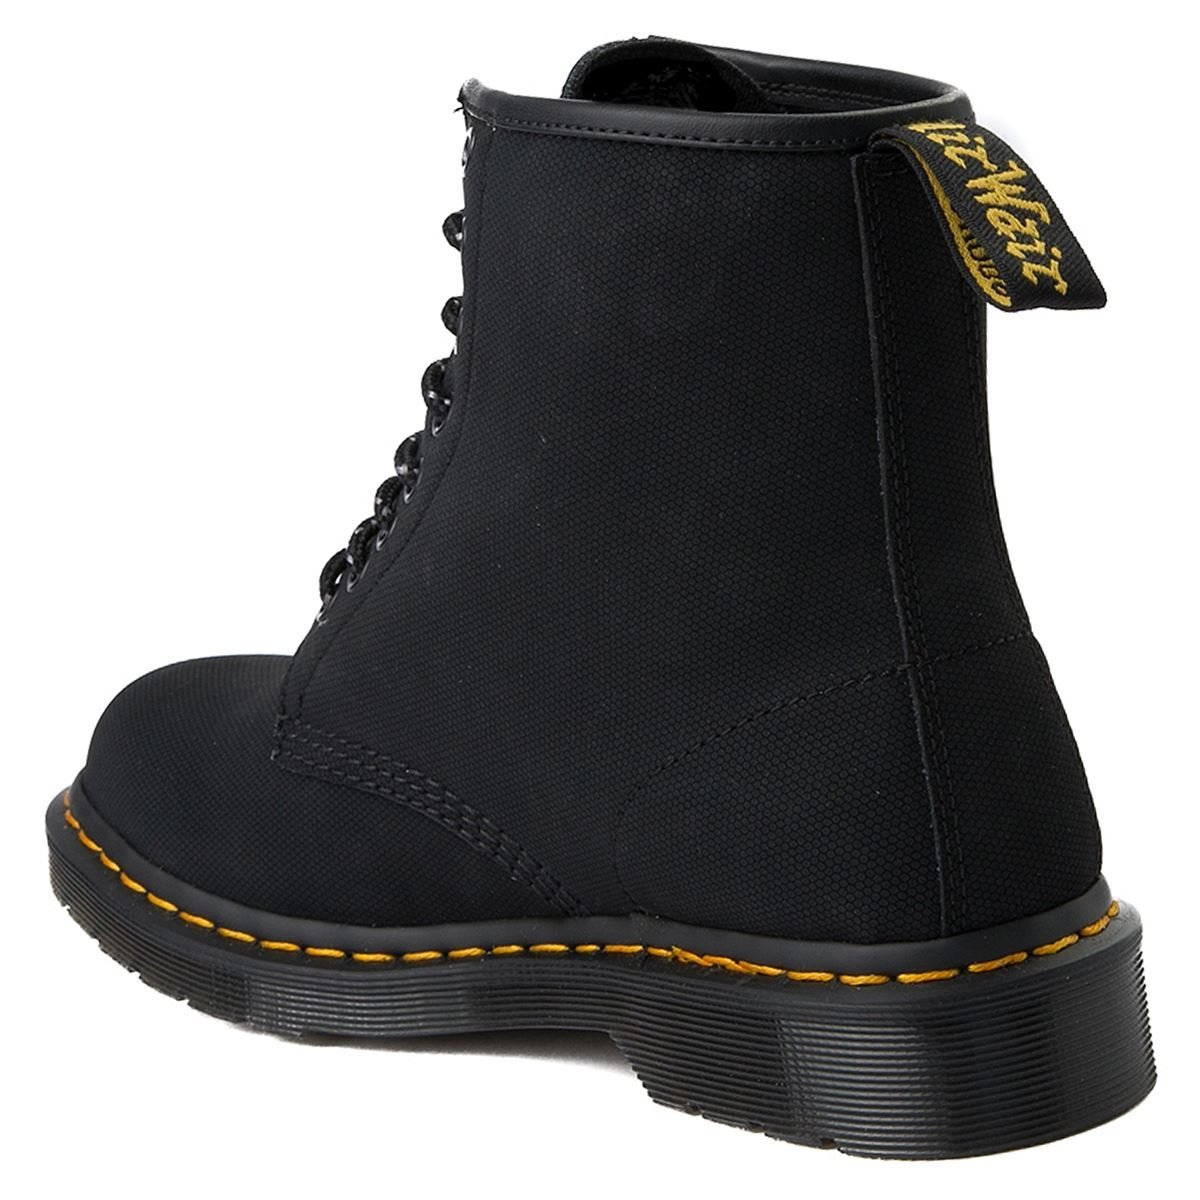 Dr. Martens 1460 Boot Originals Eight-Eye Lace-Up Boot 1460 B000BNTRKA Small|Black 59c0b2